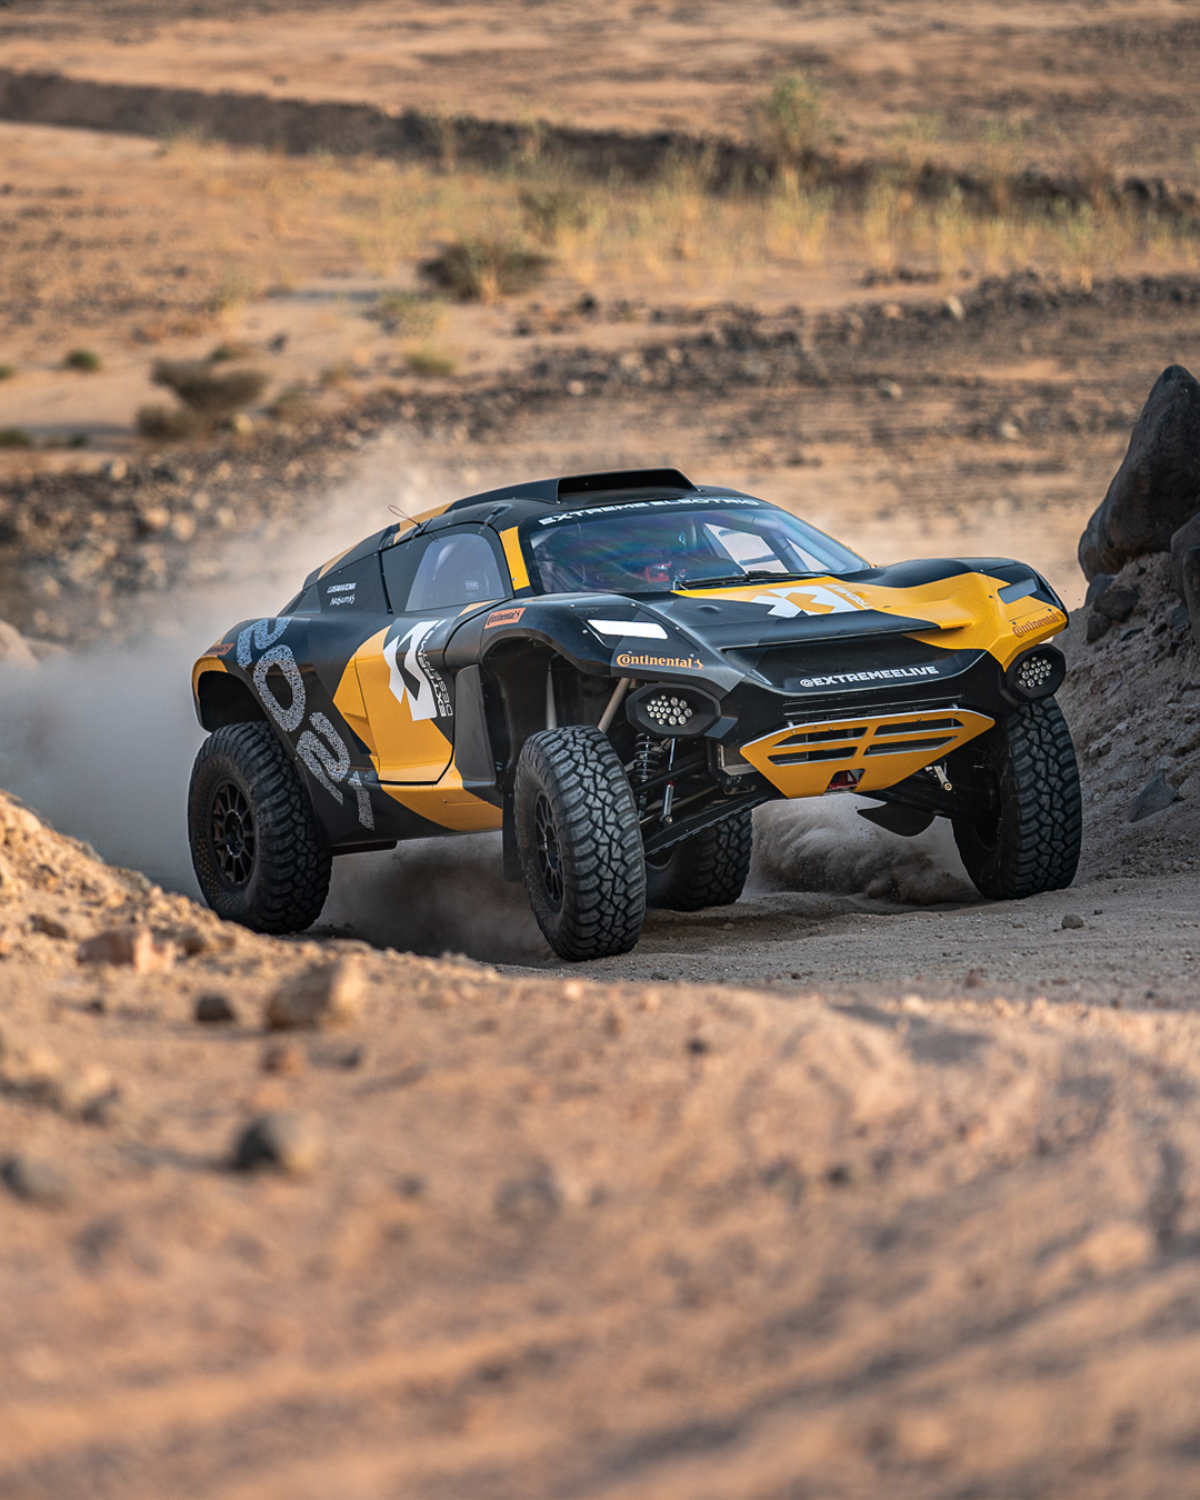 Zenith As Official Extreme E Timekeeper And Founding Partner Of Electric Off-road Racing Series